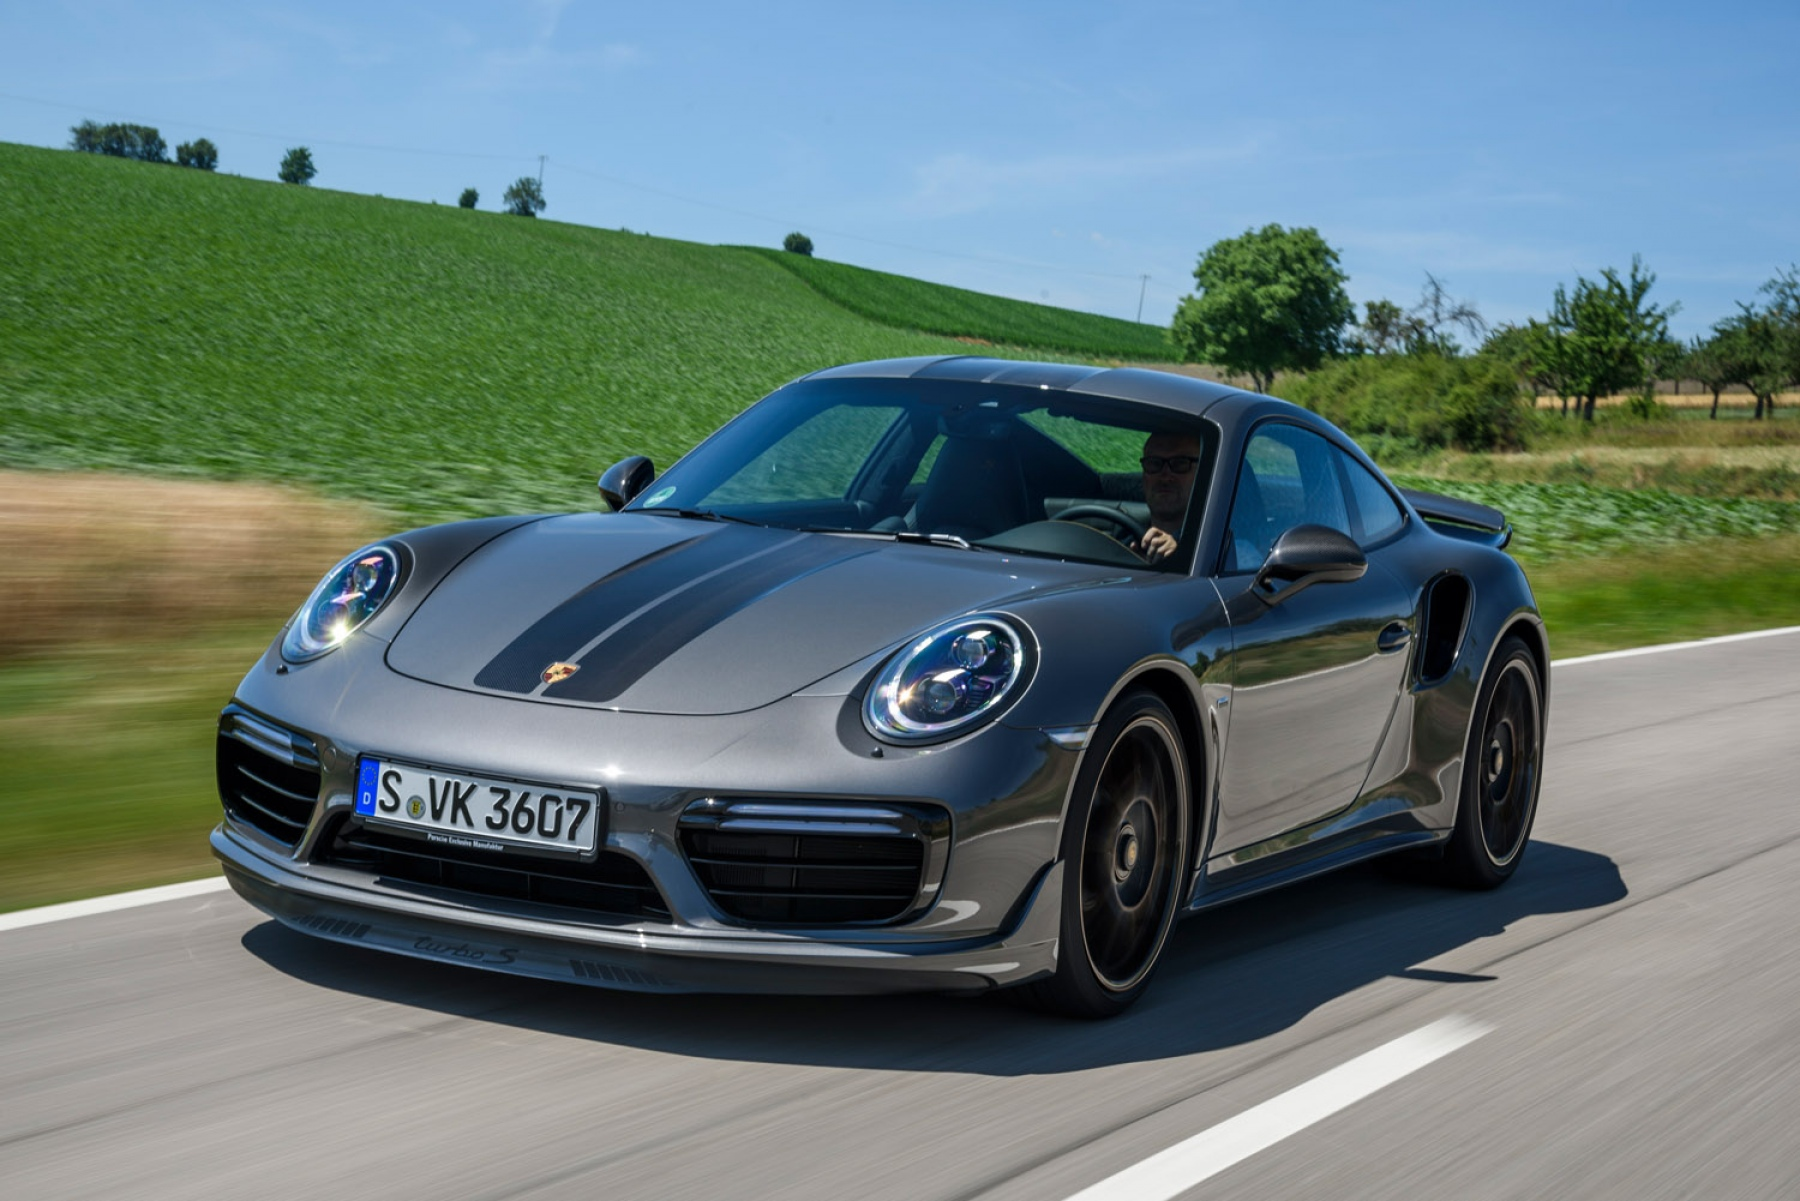 911 Turbo S Exclusive Series Agate Grey Metallic Workshop Manufatura Porsche Exclusive